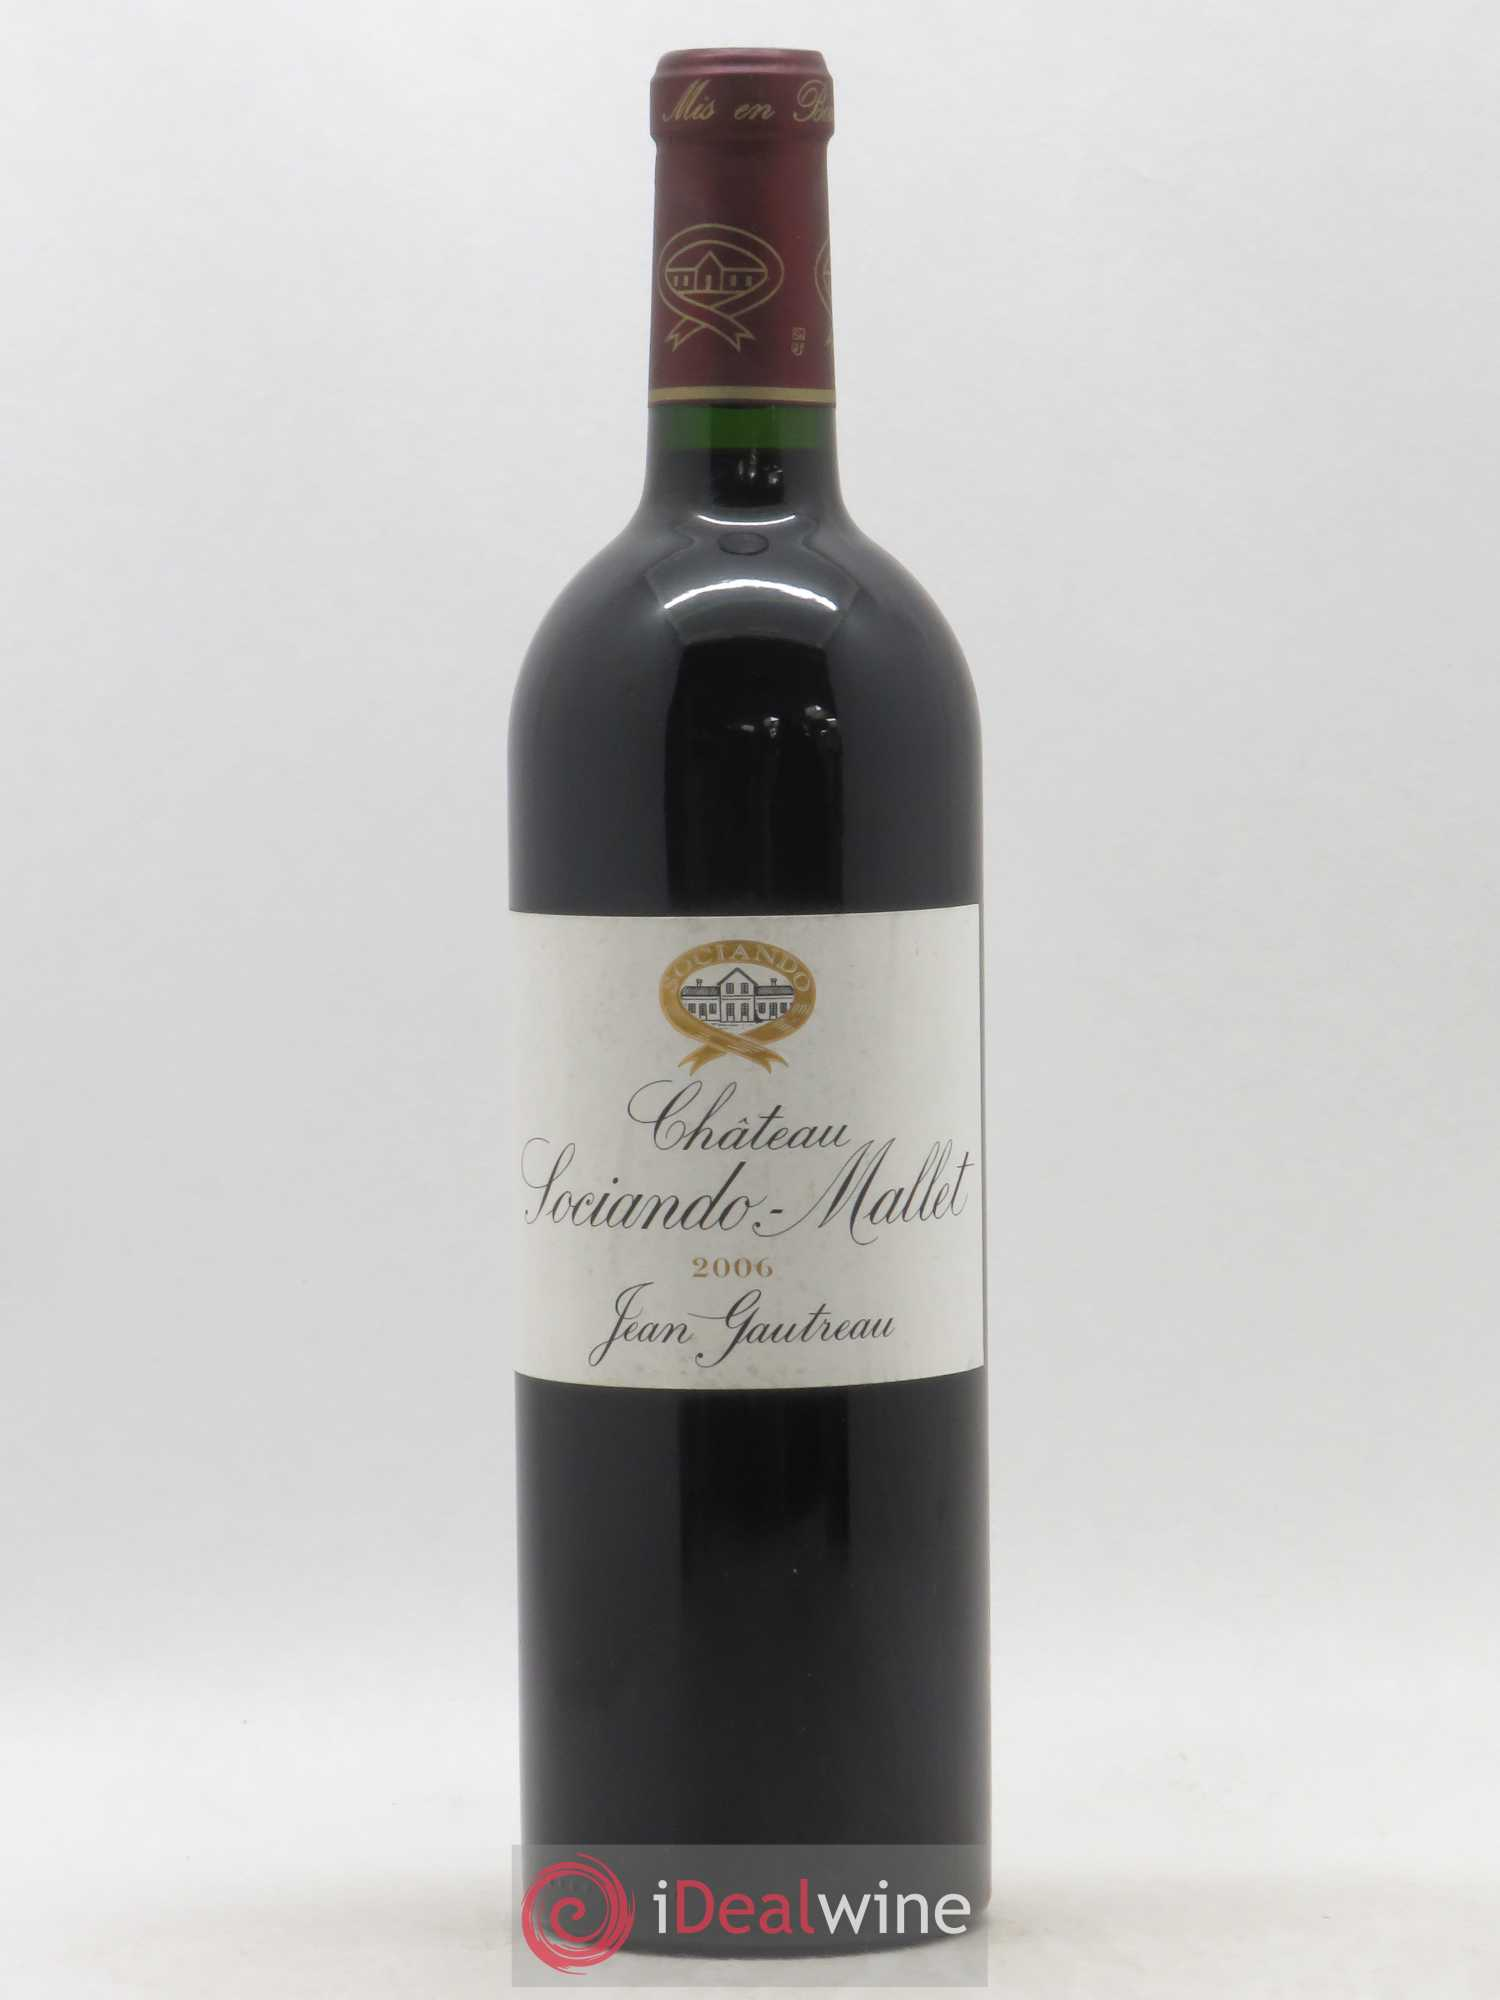 Château Sociando Mallet  2006 - Lot of 1 Bottle